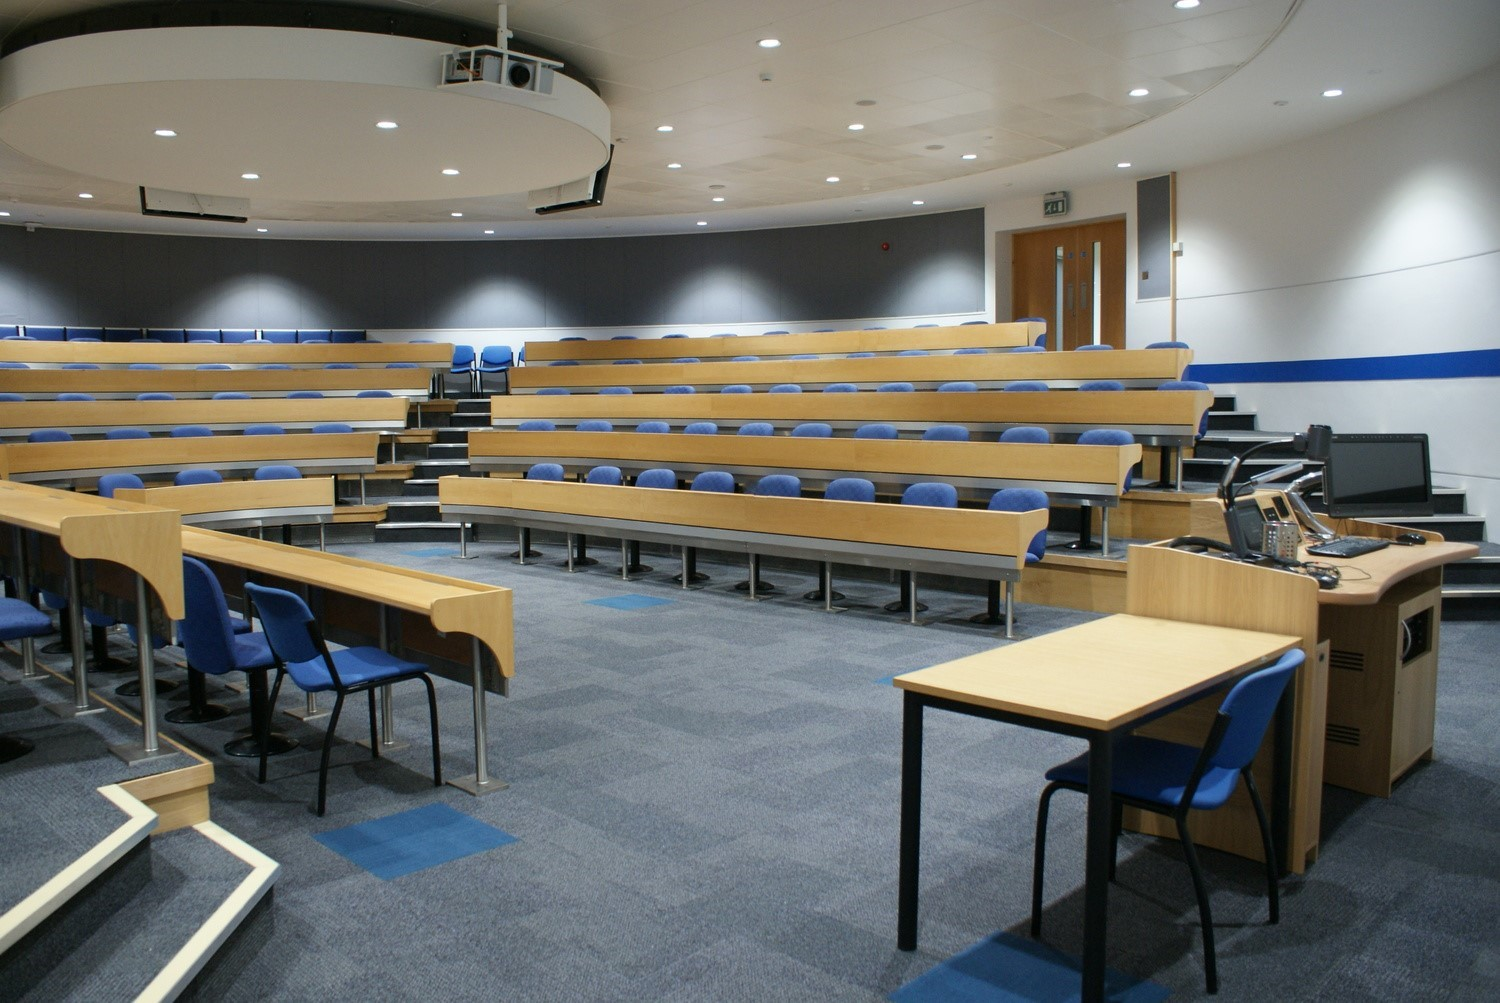 University of Leeds Central Teaching Accommodation 2009, 2013, 2014, 2015, 2016, 2017, 2018 & 2019